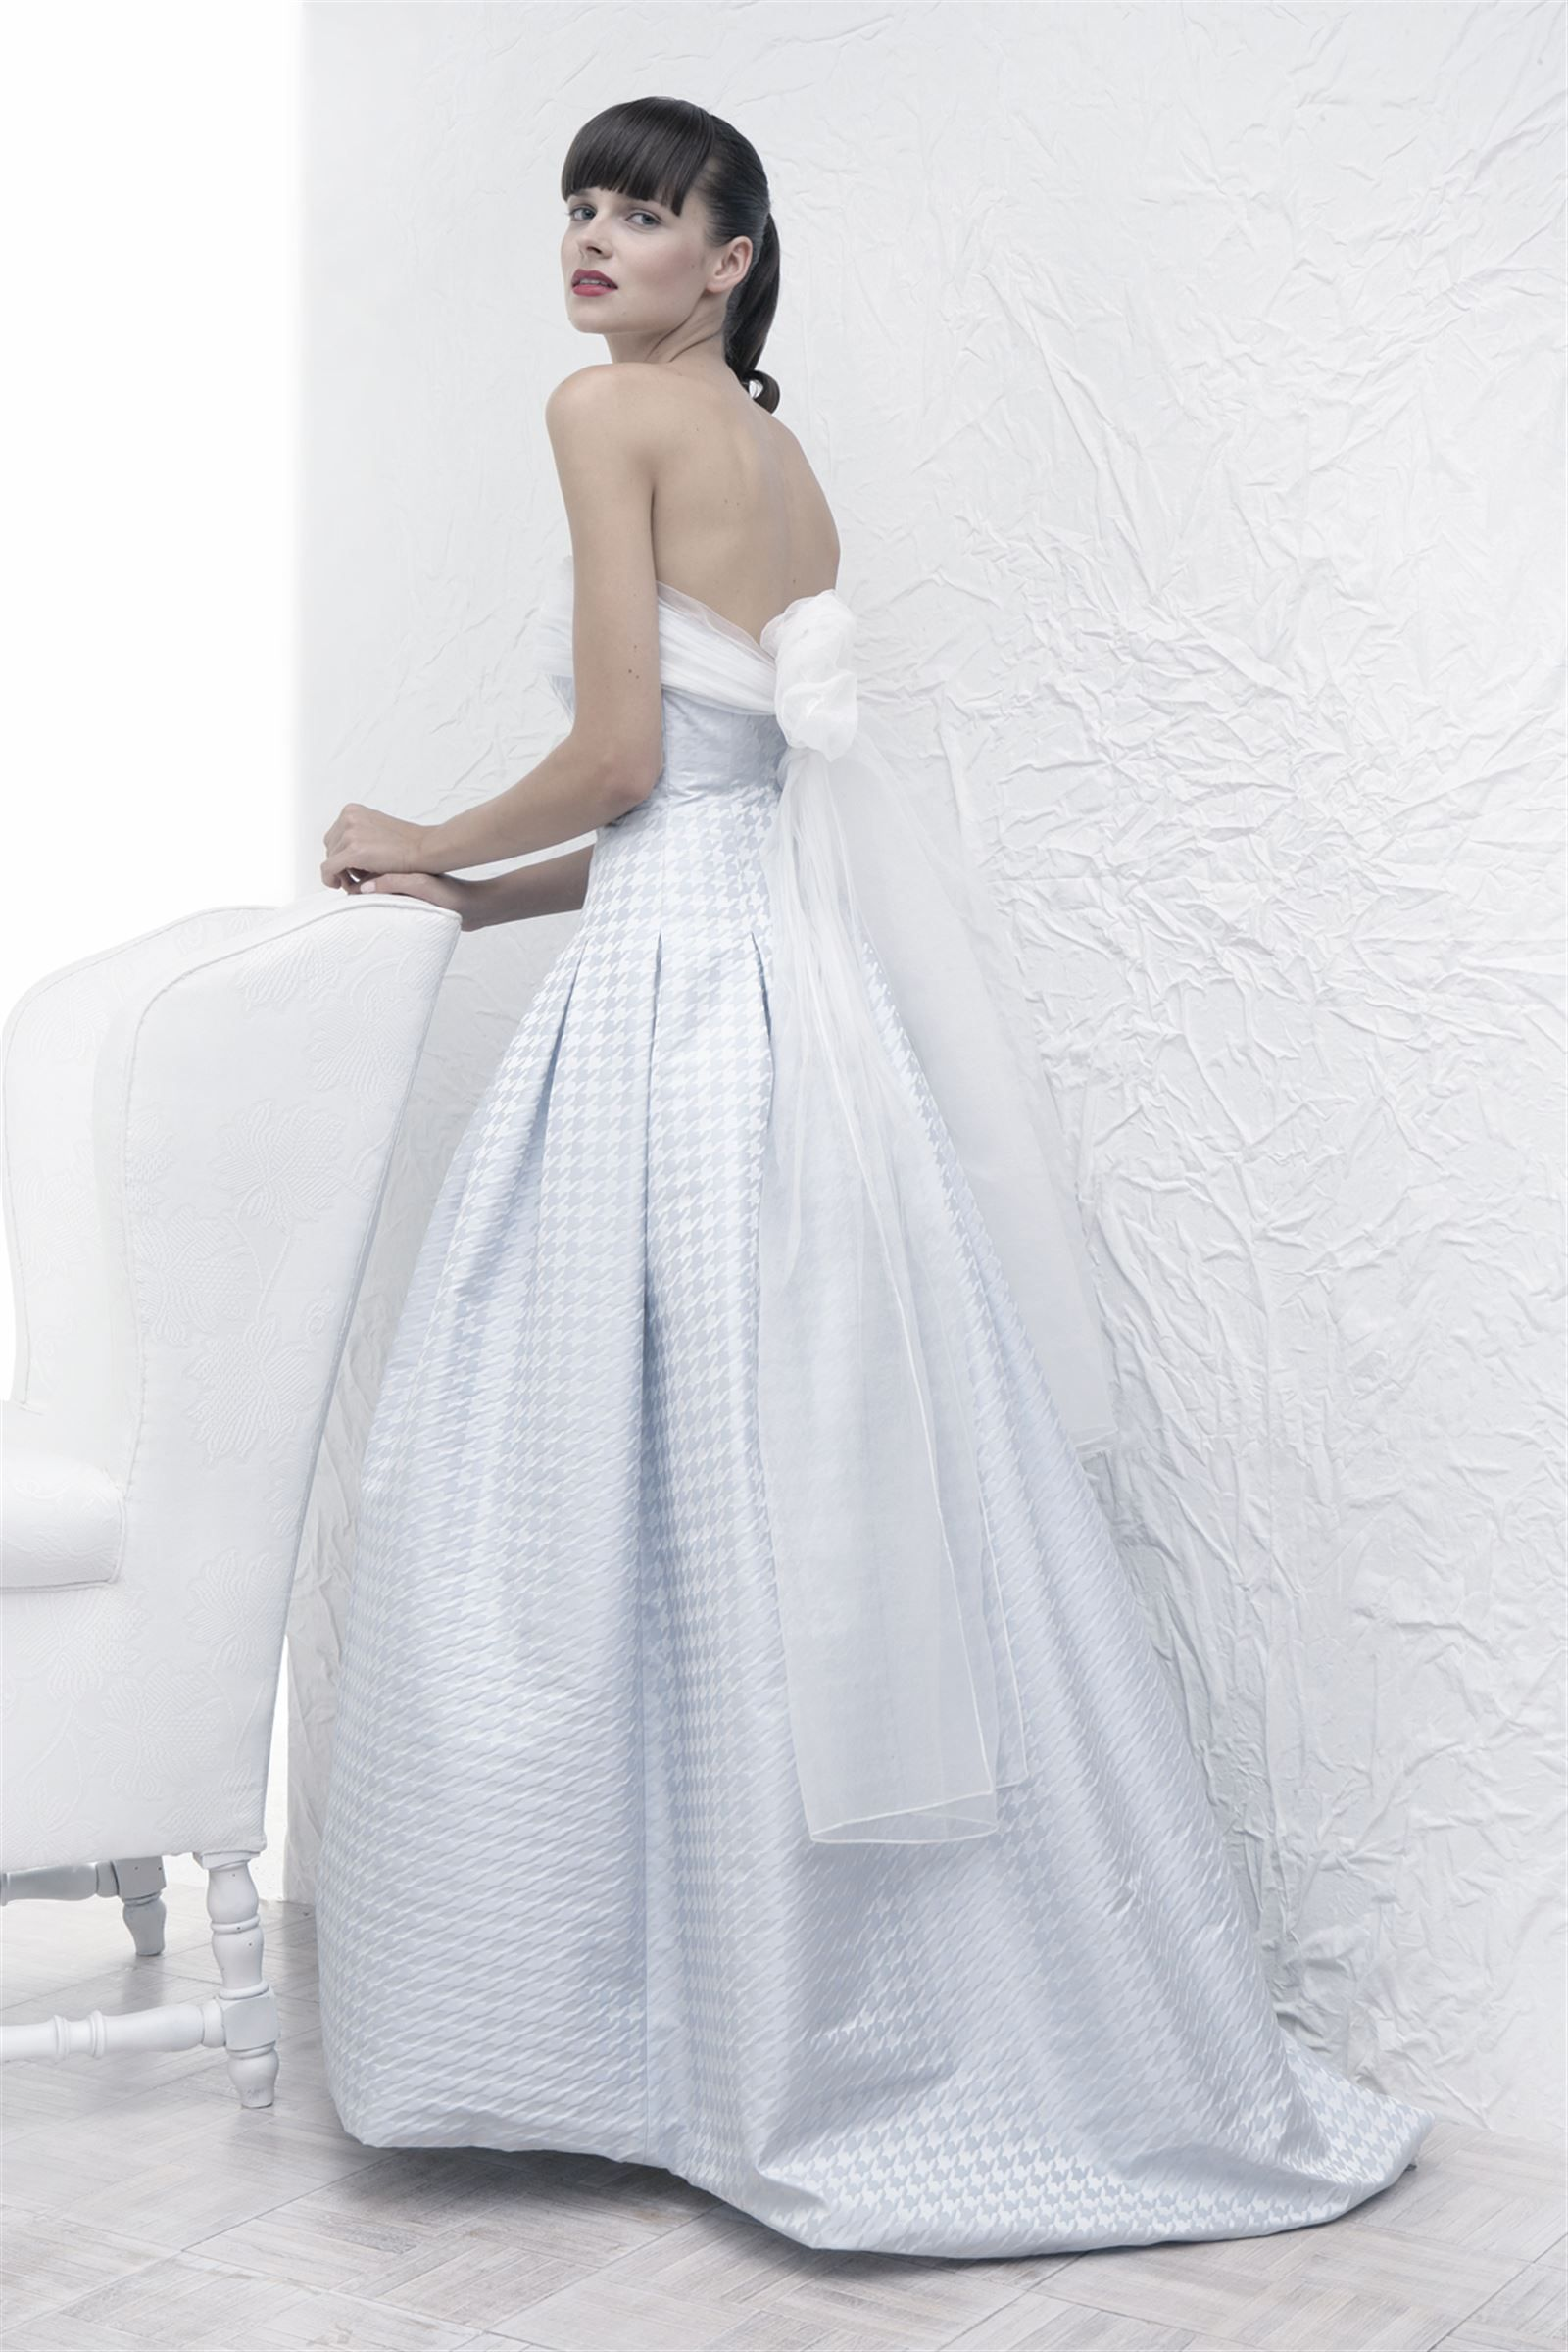 Classic Style Wedding Dress With Modern Additions From Acquachiara